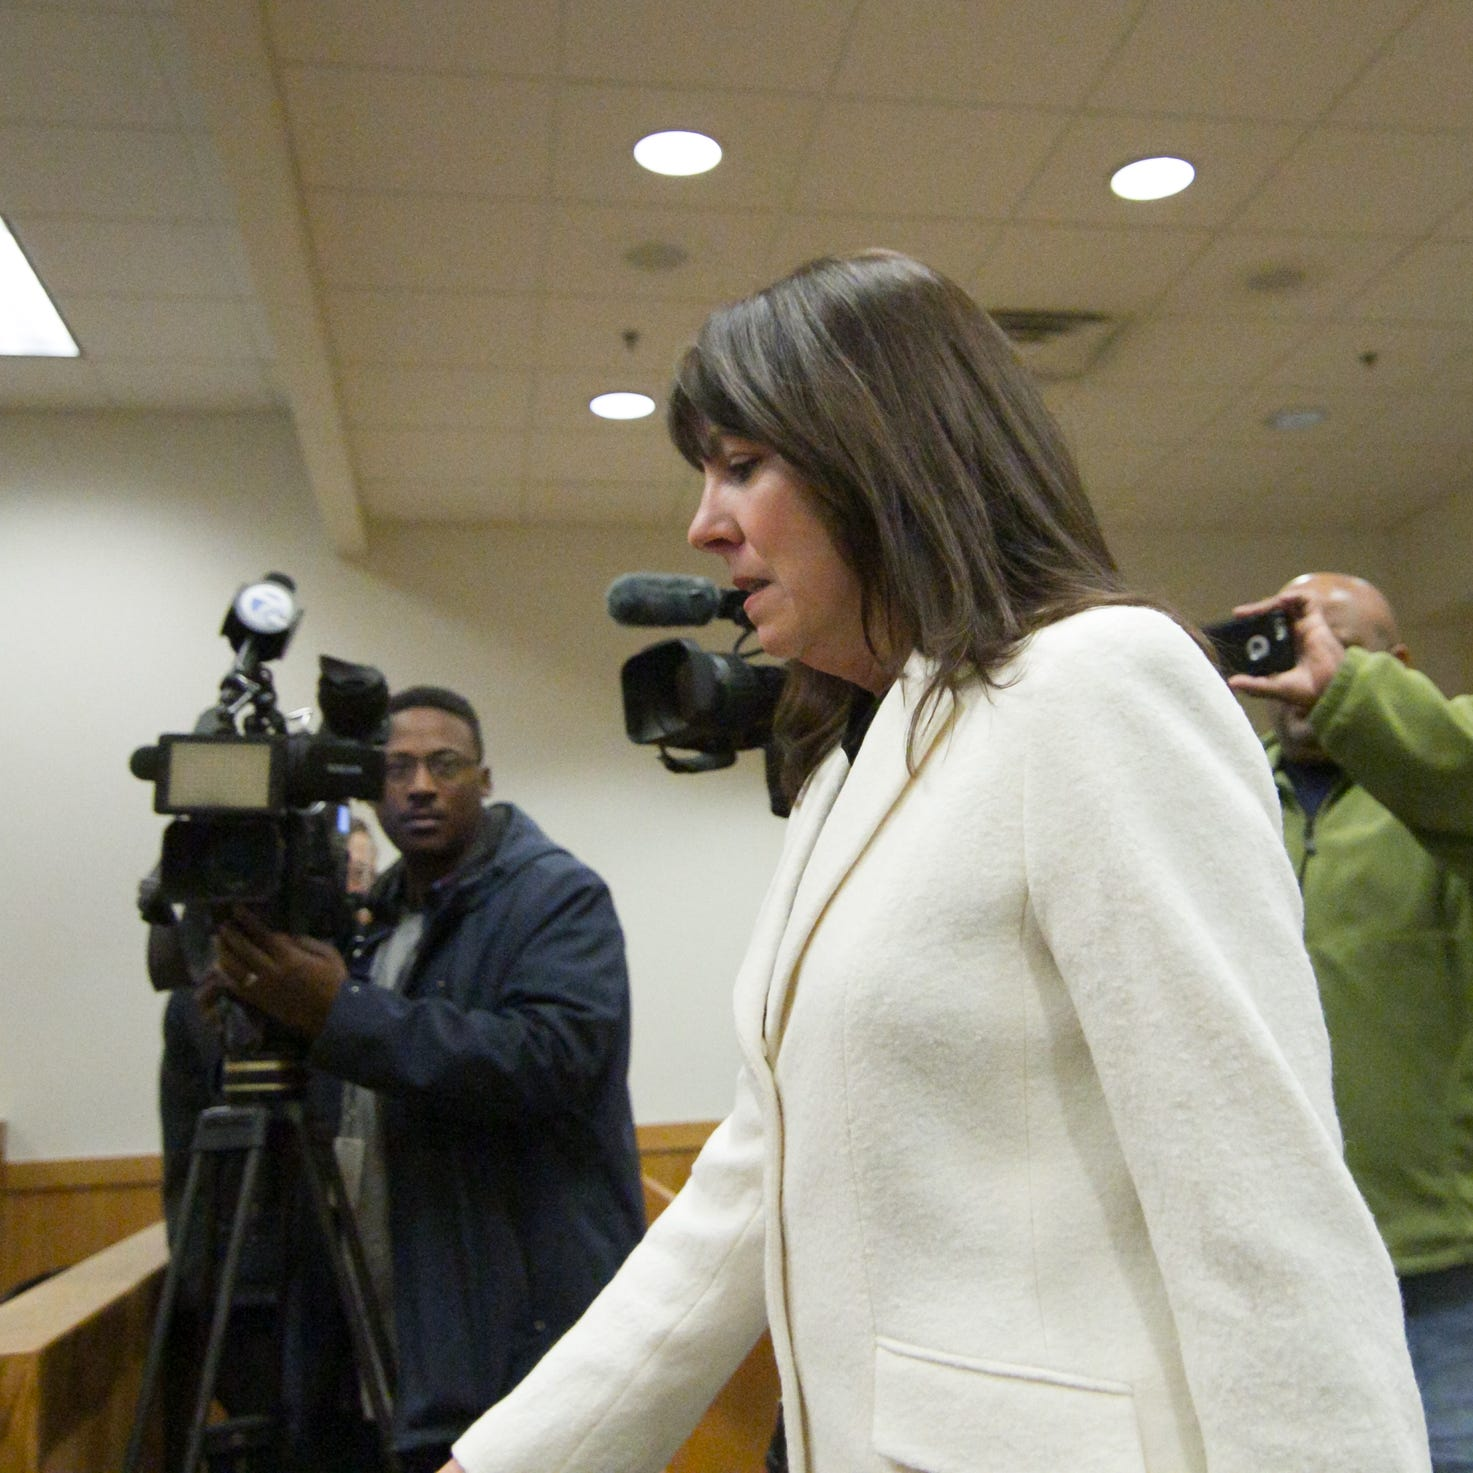 Judge Theresa Brennan arraigned on 3 felonies, released on bond